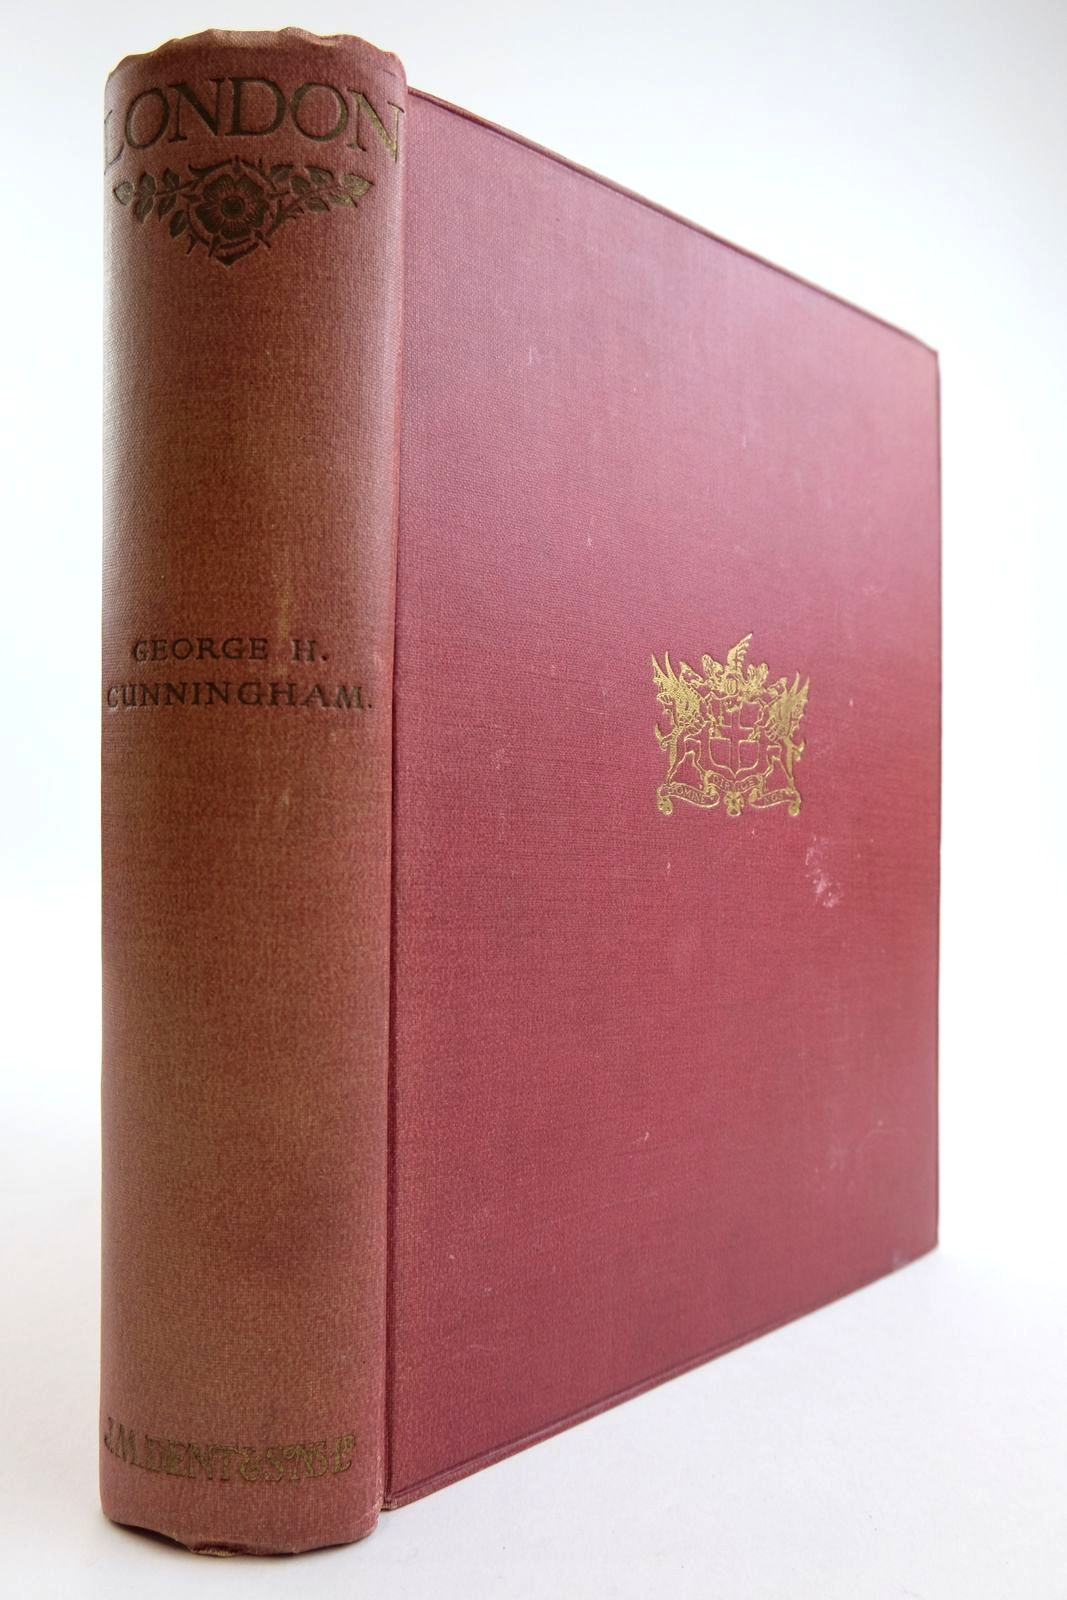 Photo of LONDON written by Cunningham, George H. published by J.M. Dent & Sons Ltd. (STOCK CODE: 2134161)  for sale by Stella & Rose's Books